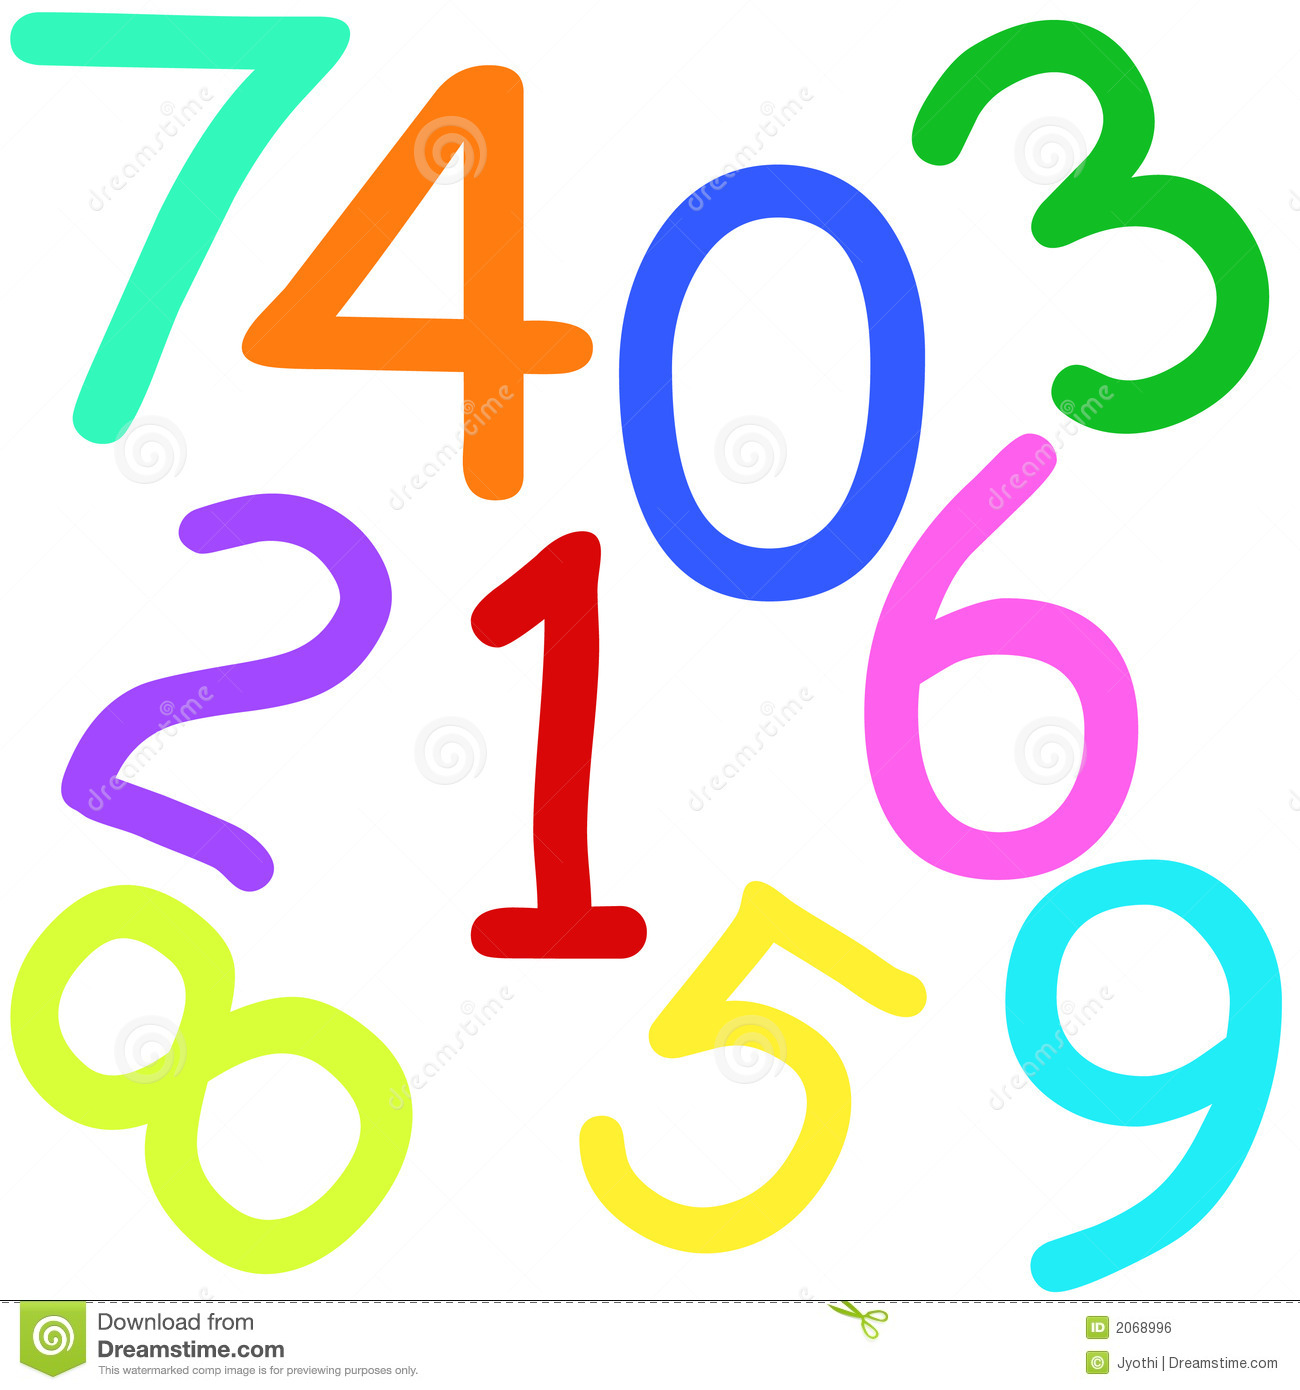 Colorful numbers stock illustration. Illustration of ...